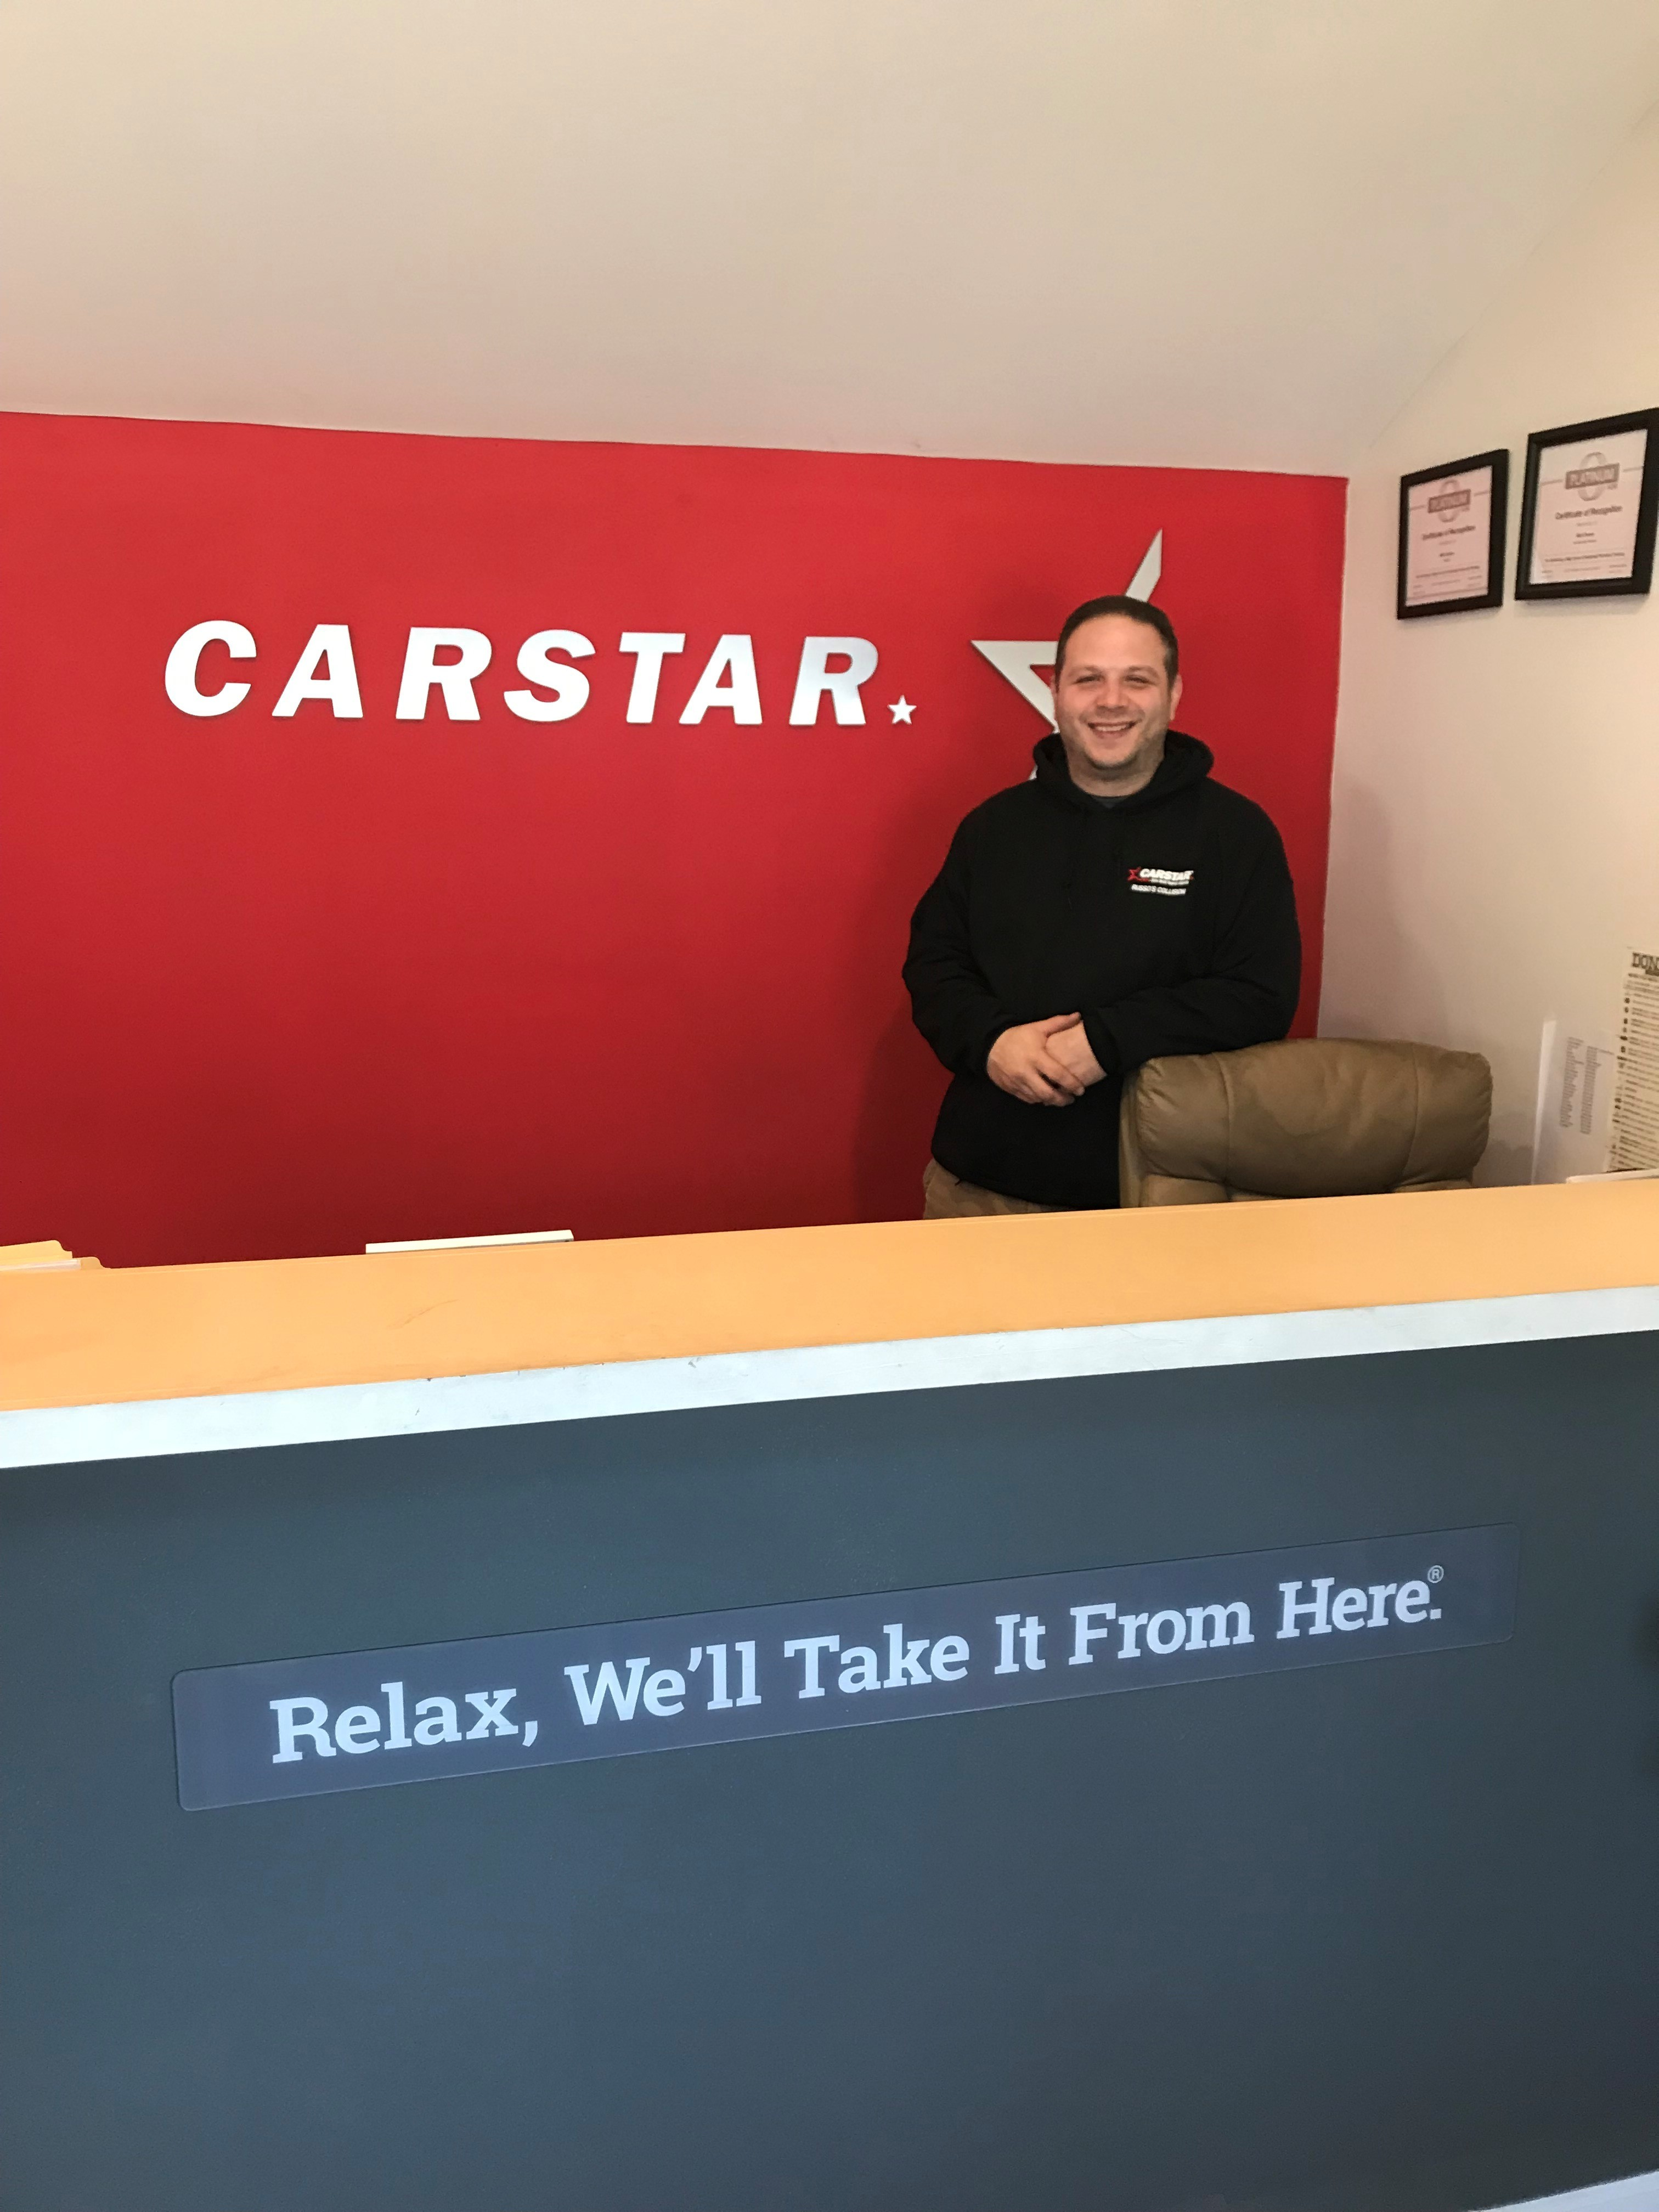 CARSTAR Russo's Collision (Franchise Partner)